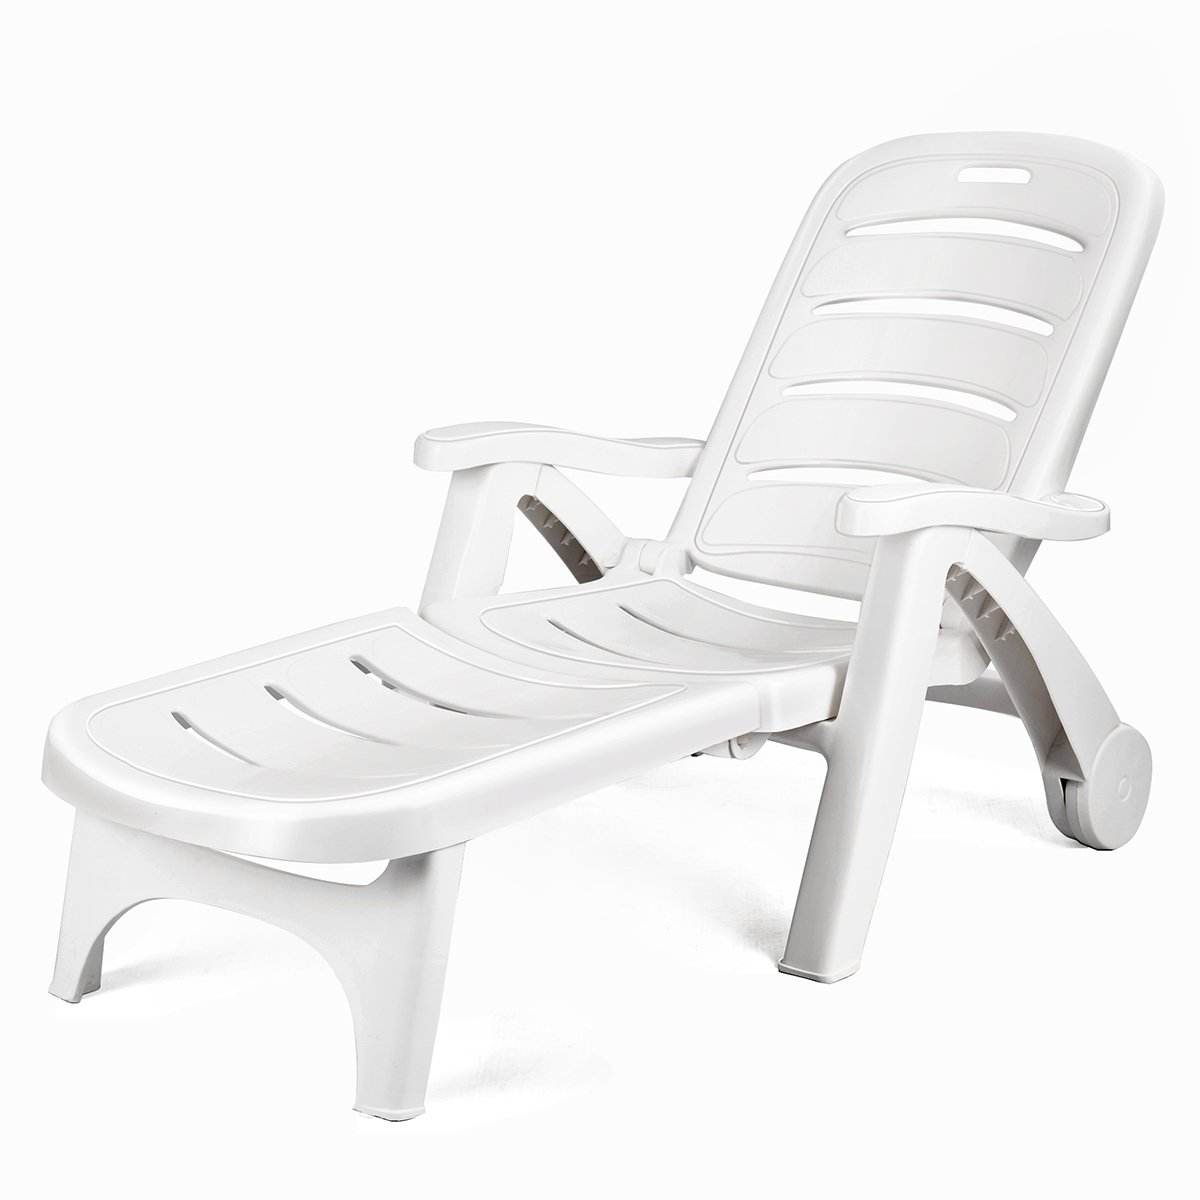 Giantex Folding Lounger Chaise Chair on Wheels Outdoor Patio Deck Chair Adjustable Rolling Lounger 5 Position Recliner w/Armrests, White by Giantex